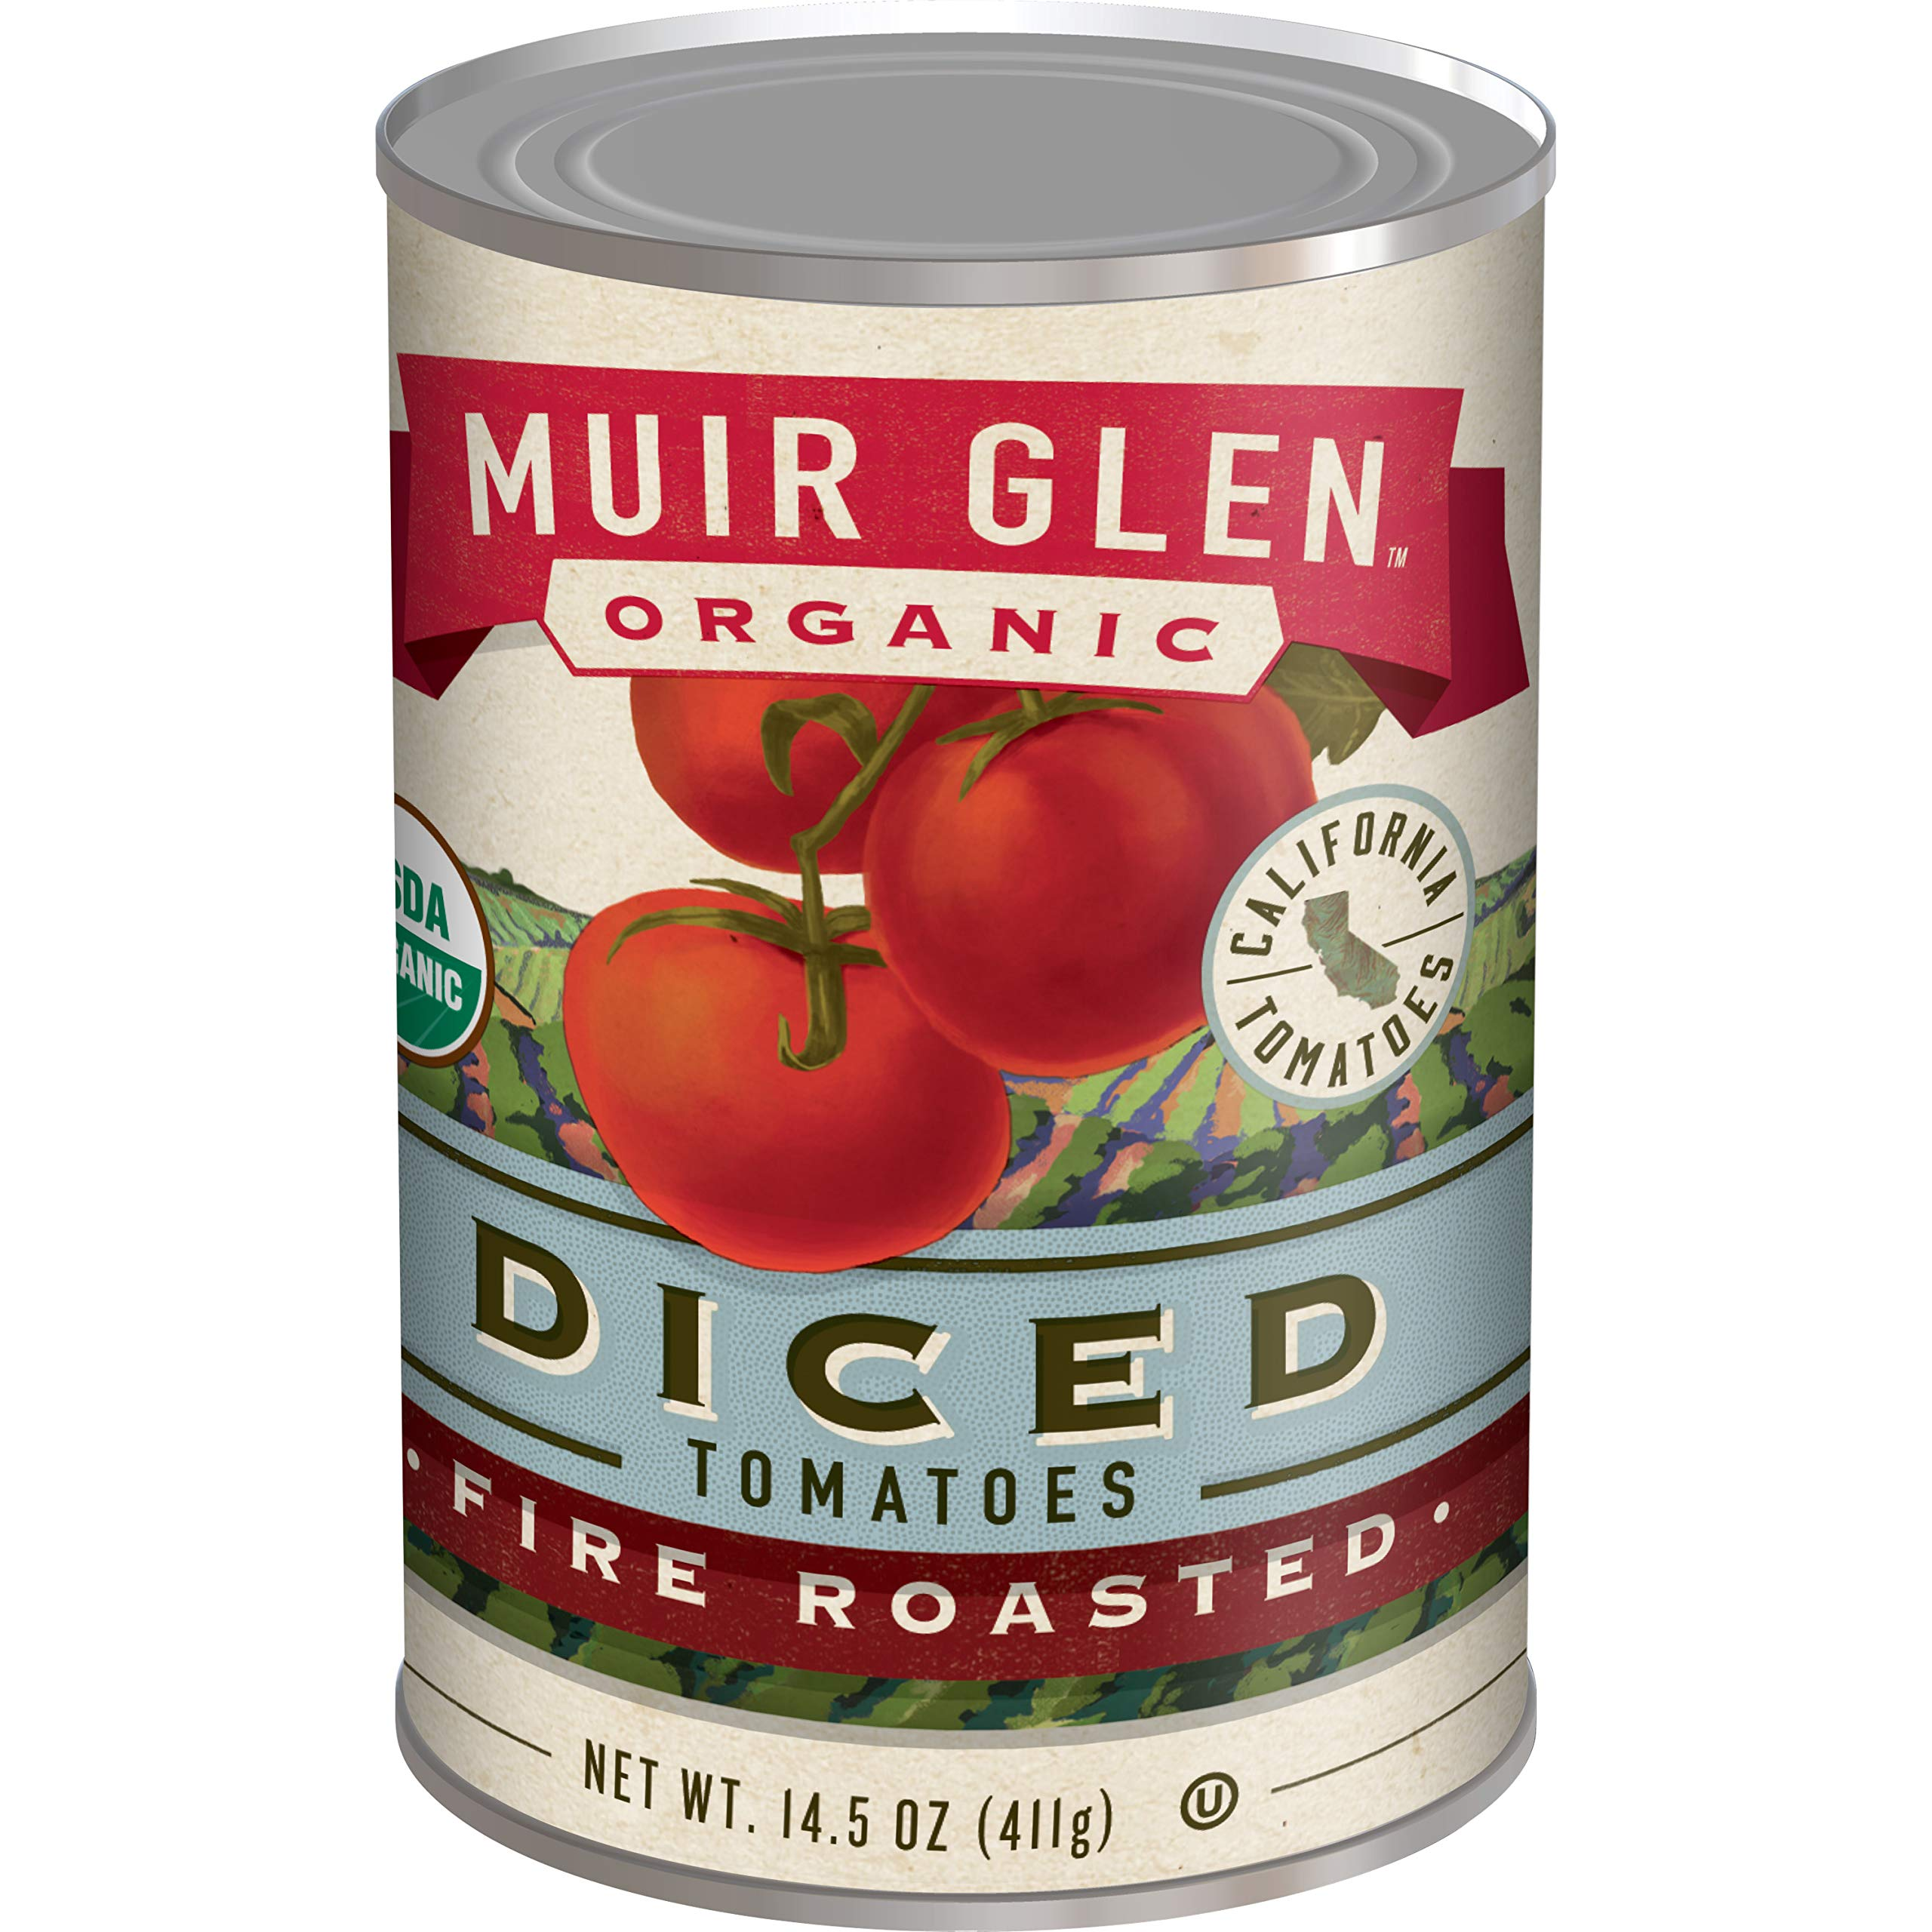 Muir Glen, Organic Diced Tomatoes, Fire Roasted, 14.5 oz